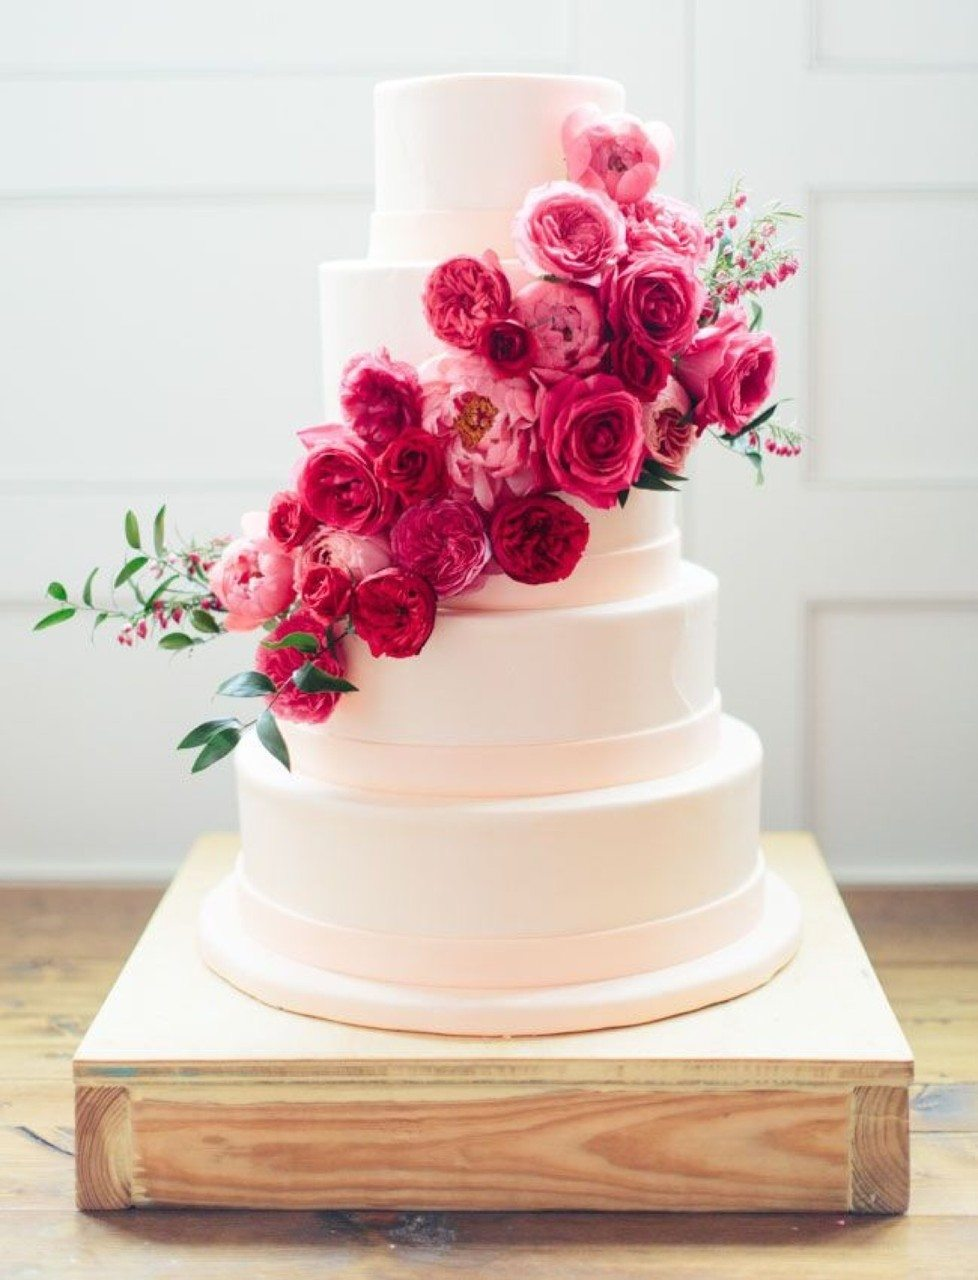 Wedding Cake Ideas That Are Delightfully Perfect   A Practical Wedding roses on a wedding cake